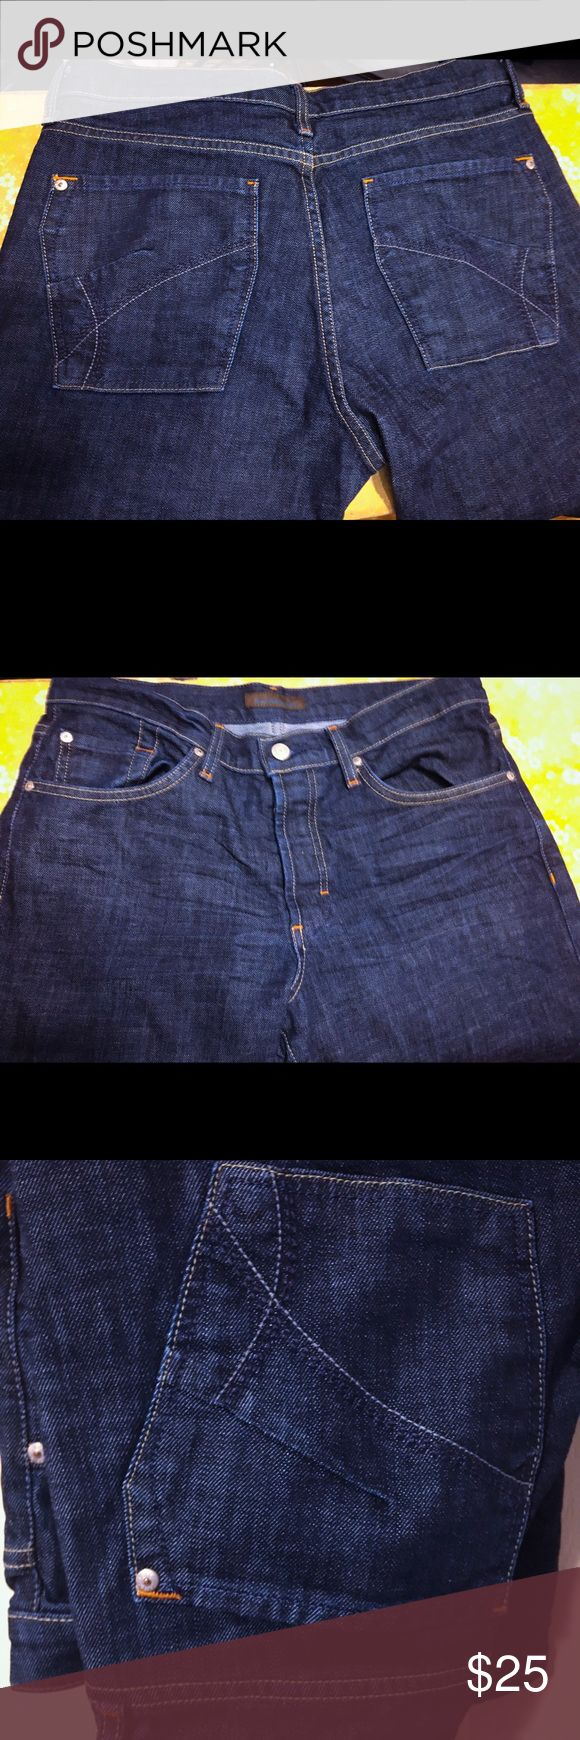 James Dark Denim Jeans These are dark denim jeans, in great condition no rips or stains. Nice pair of jeans goes with anything. Everyone needs a pair of dark denim jeans in their closet. All reasonable offers accepted James Jeans Jeans Straight Leg